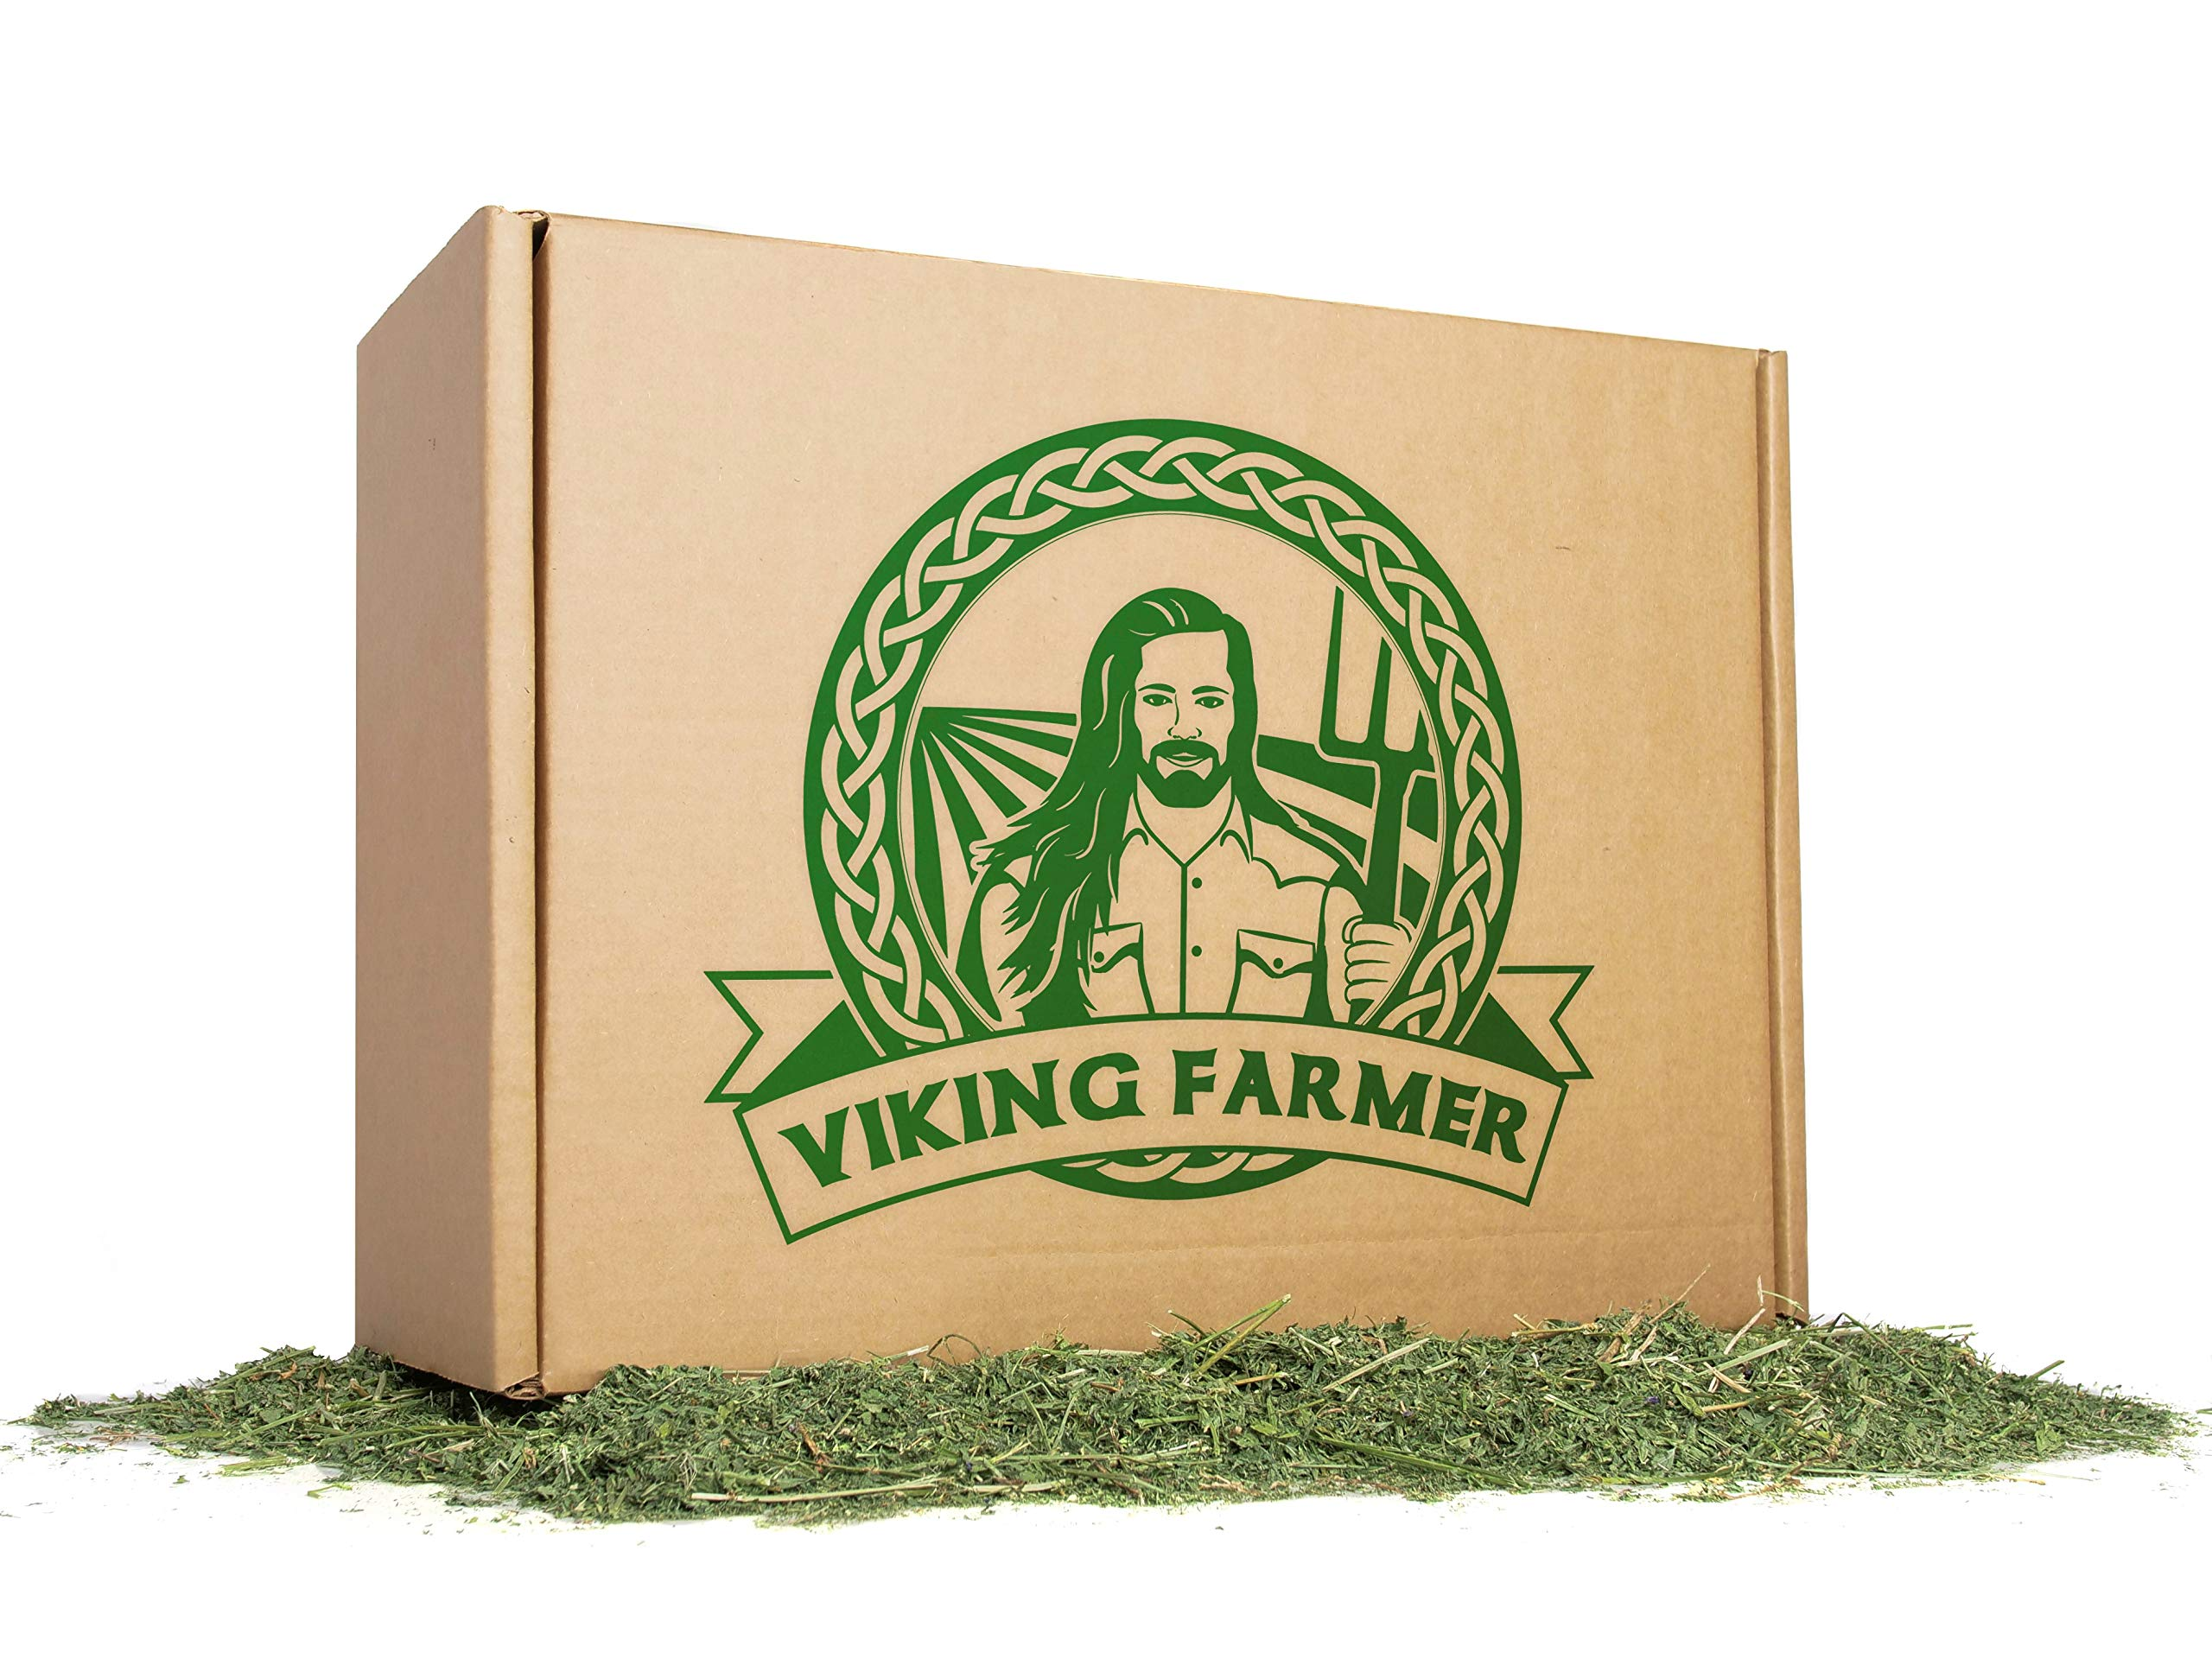 Viking Farmer Alfalfa Hay for Rabbits & Small Pets - 10 lbs by Viking Farmer